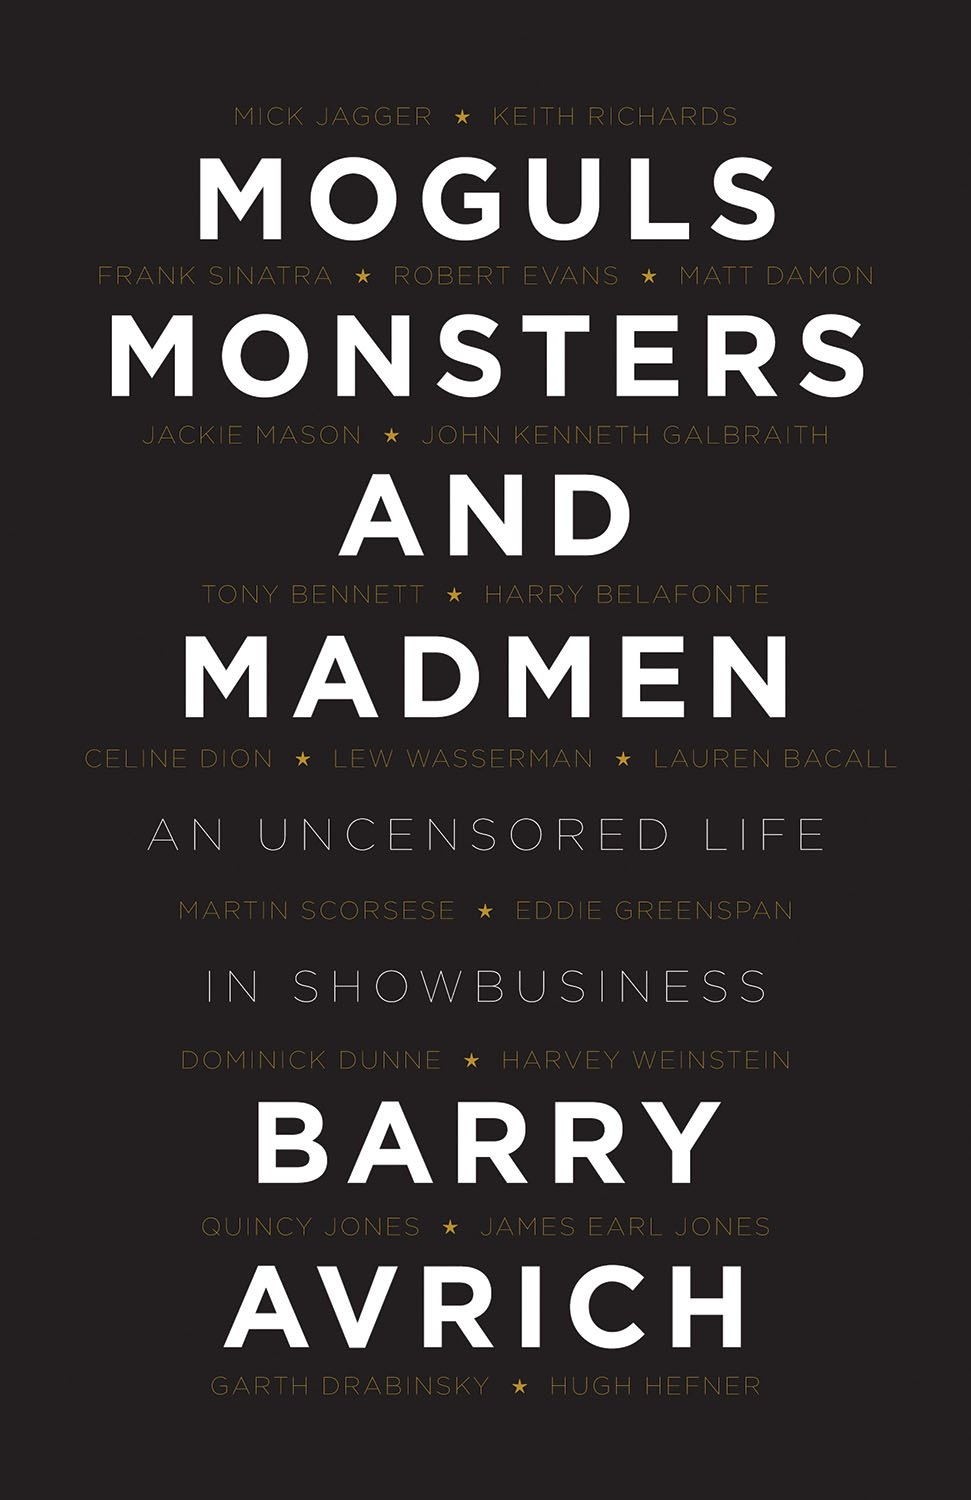 Moguls monsters and madmen an uncensored life in show business moguls monsters and madmen an uncensored life in show business barry avrich 9781770412873 amazon books fandeluxe Images